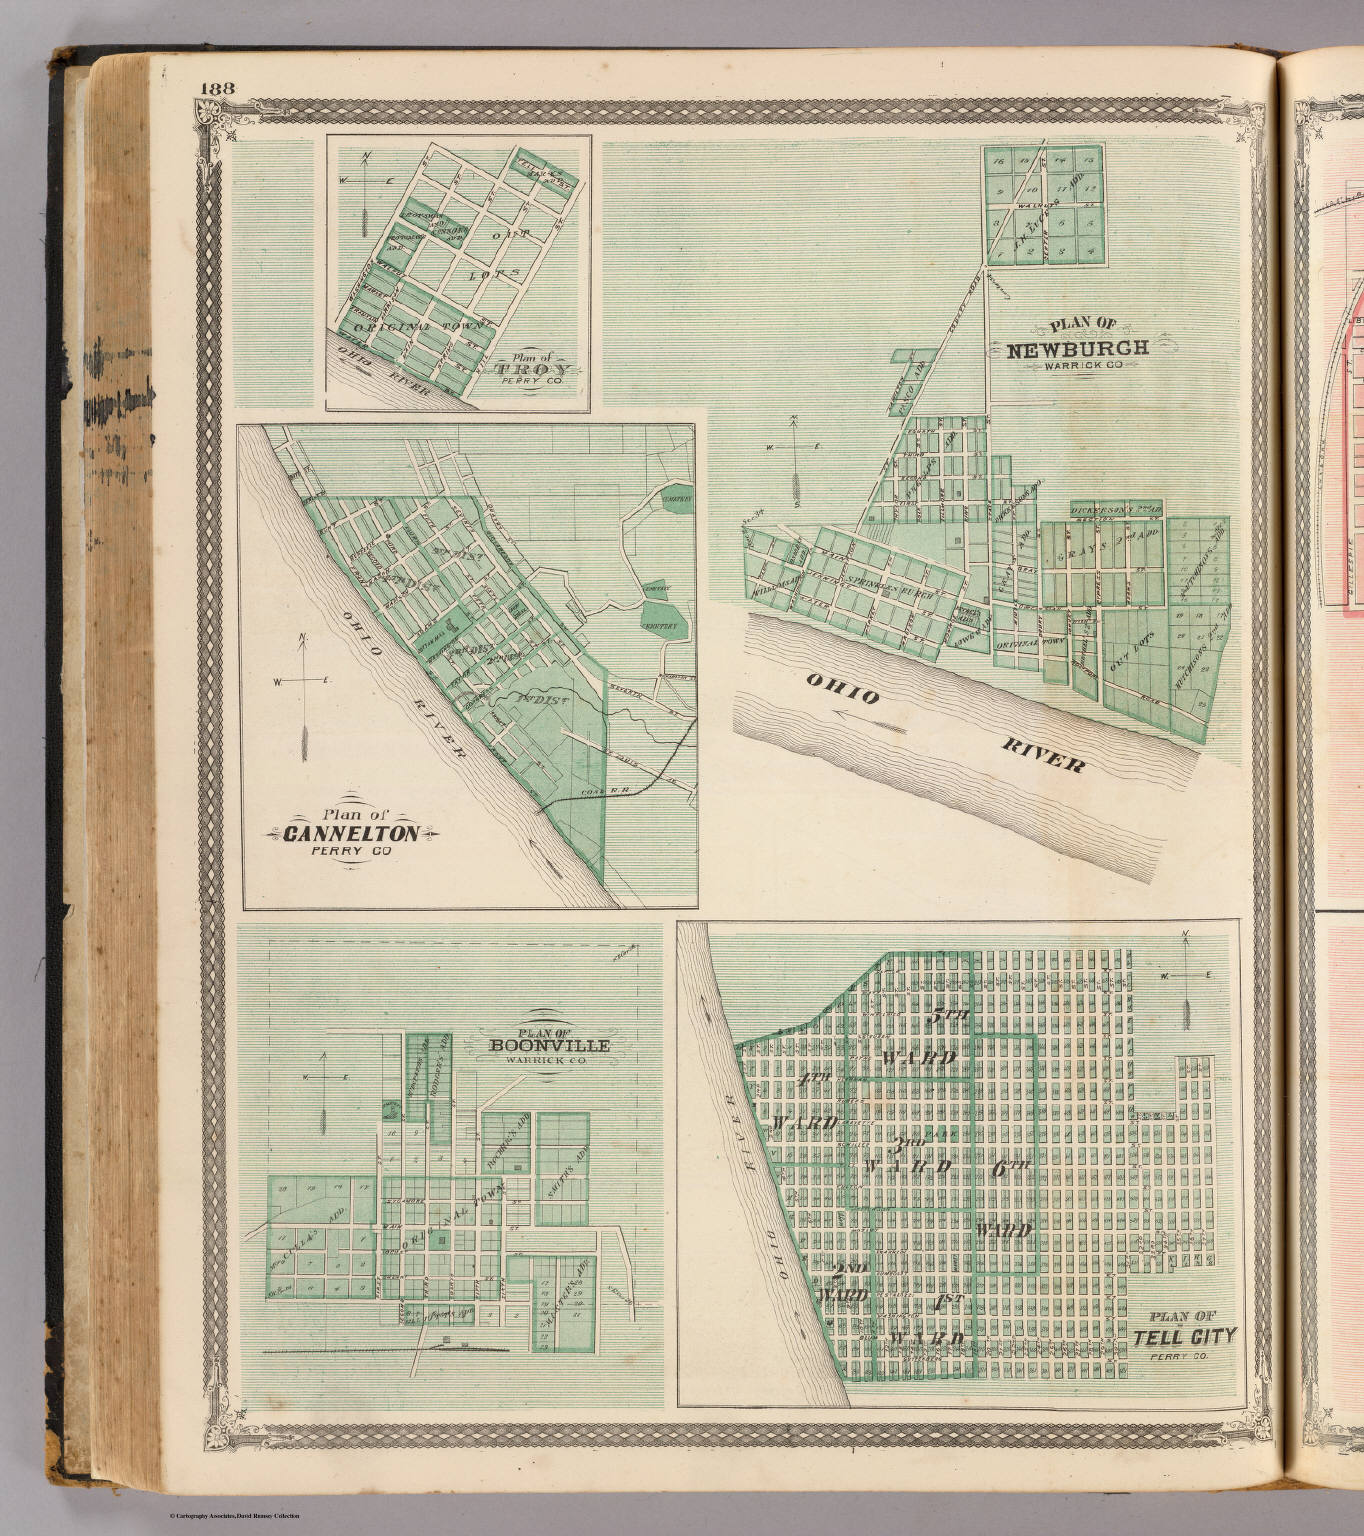 Plan of Newburgh, Warrick Co. (with) Boonville, Troy, Cannelton, Tell City.